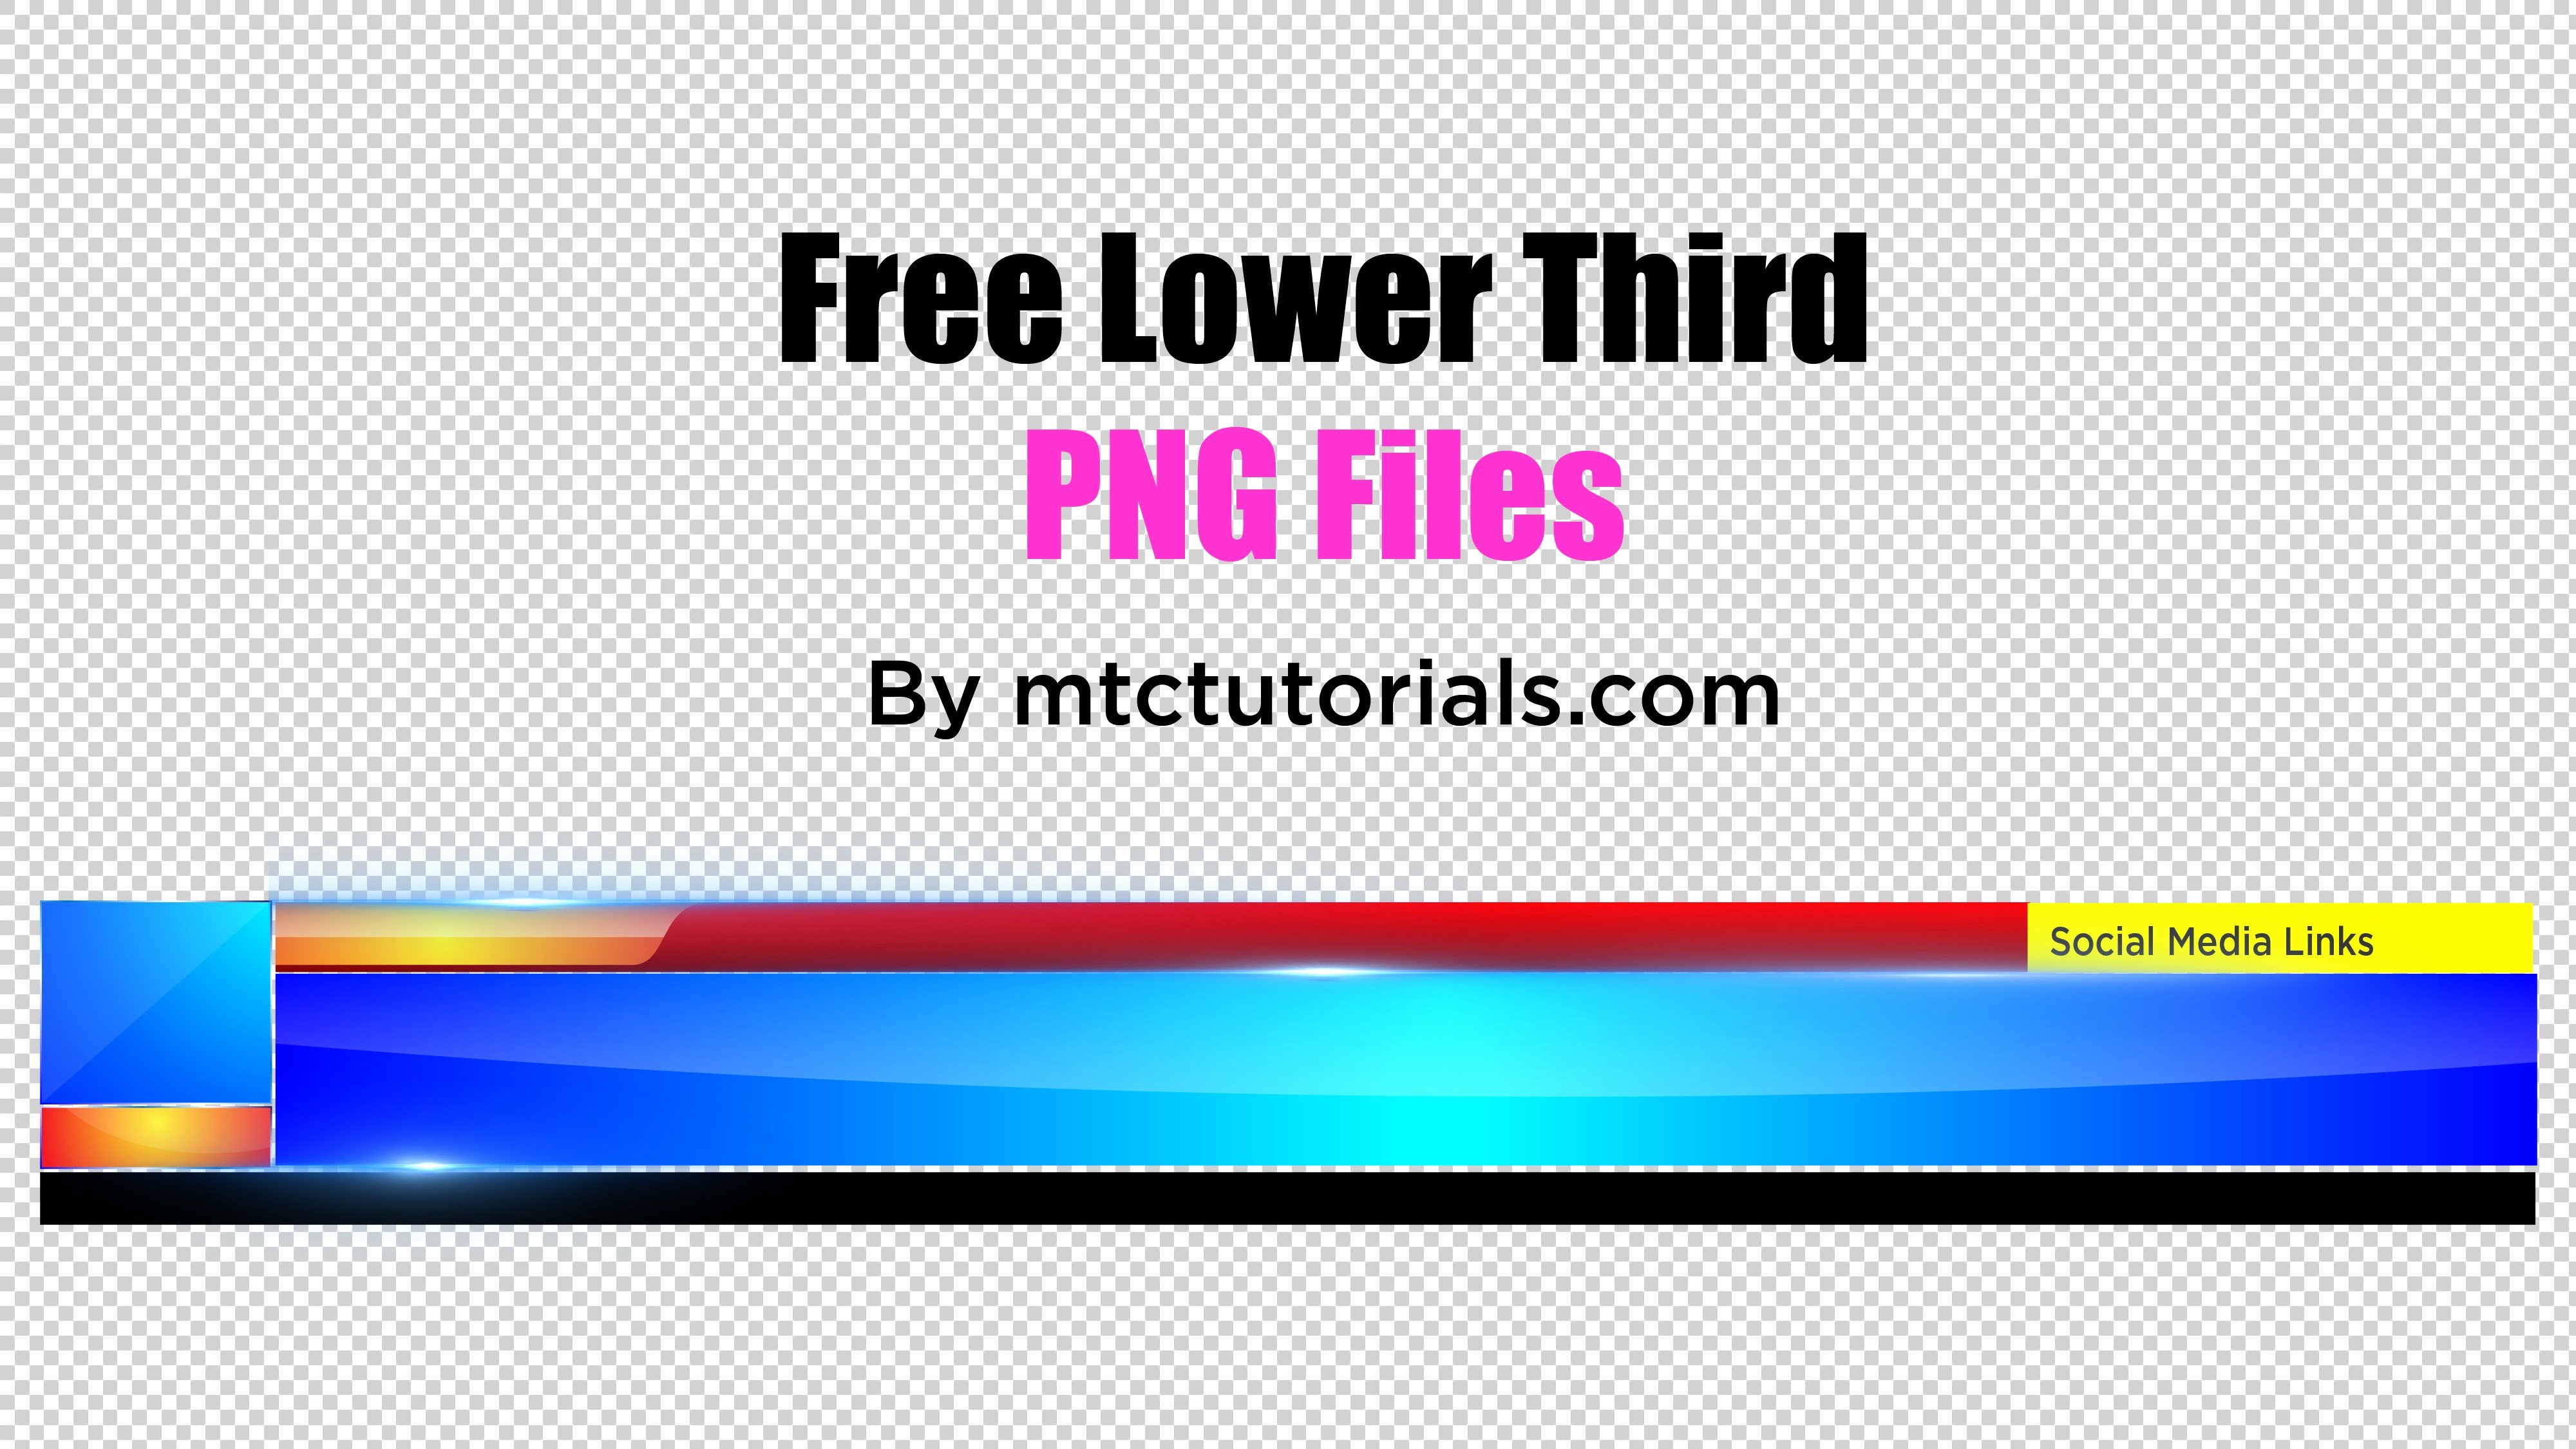 Free Lower Third Templates Photoshop Inspirational Royalty Free Professional Lower Third S Png Free Lower Third Templates Mtc Tutorials Mtc